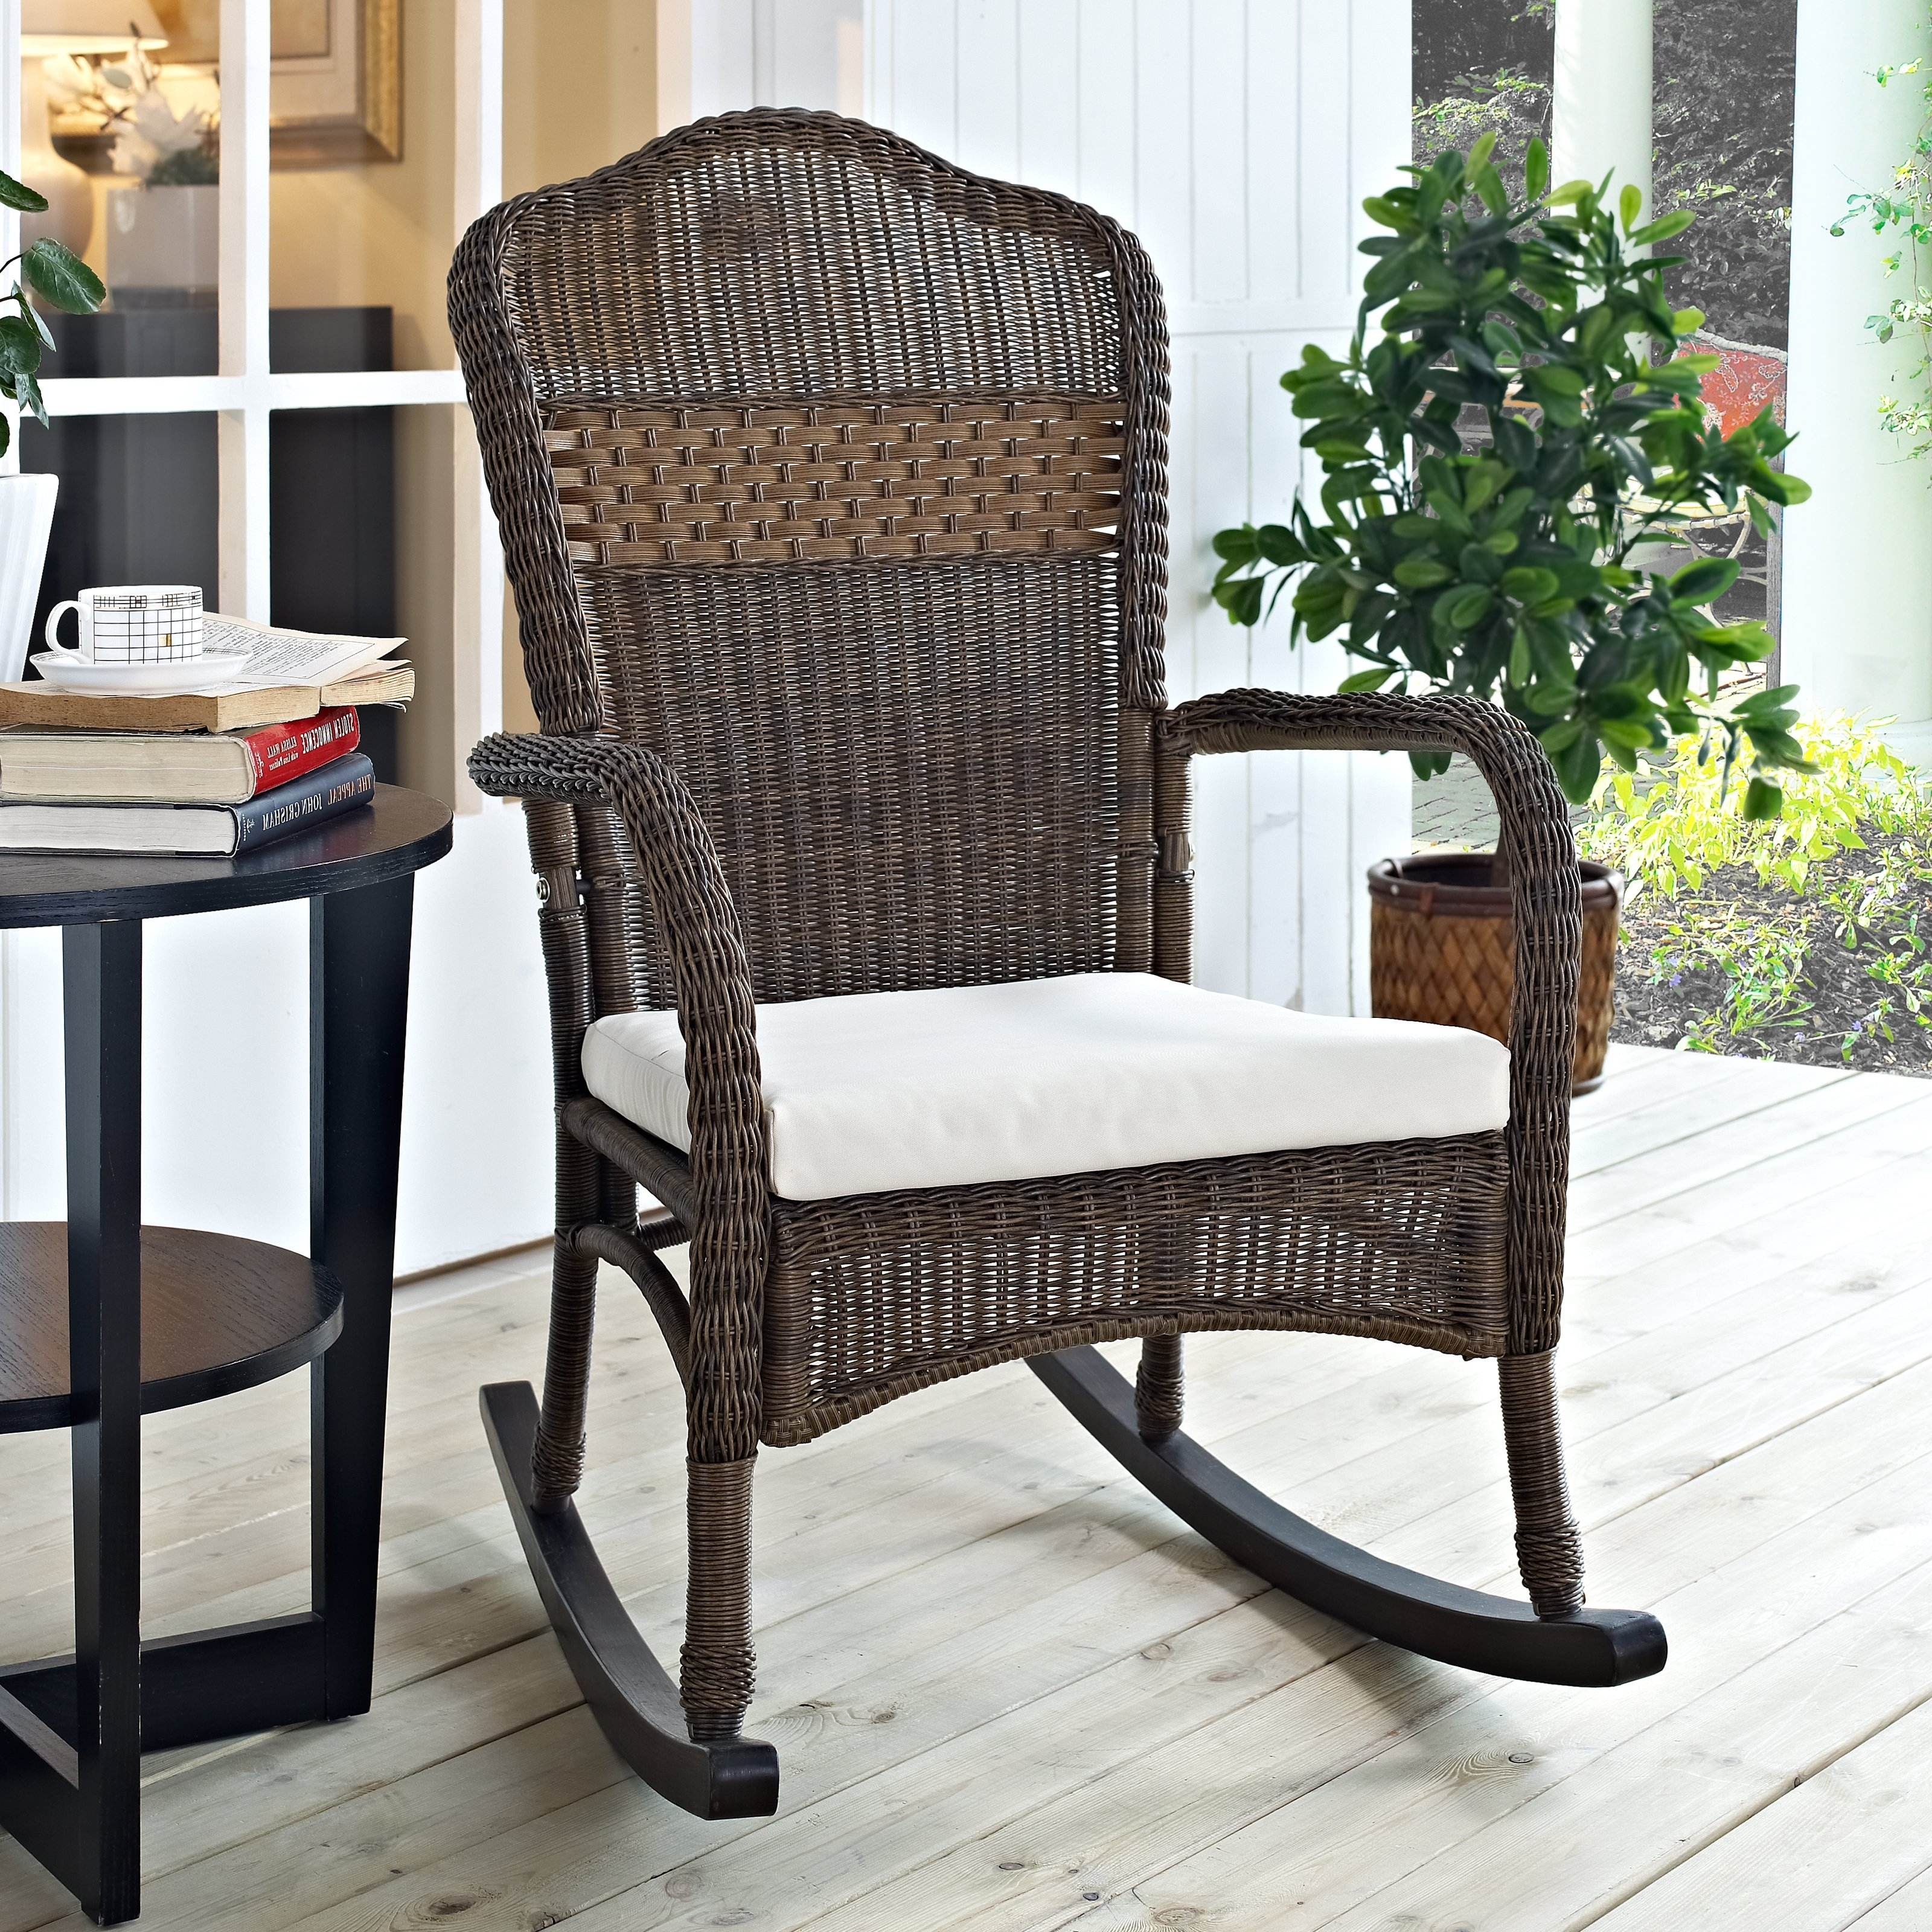 2018 Outdoor Rocking Chairs Inside Coral Coast Mocha Resin Wicker Rocking Chair With Beige Cushion (View 1 of 20)